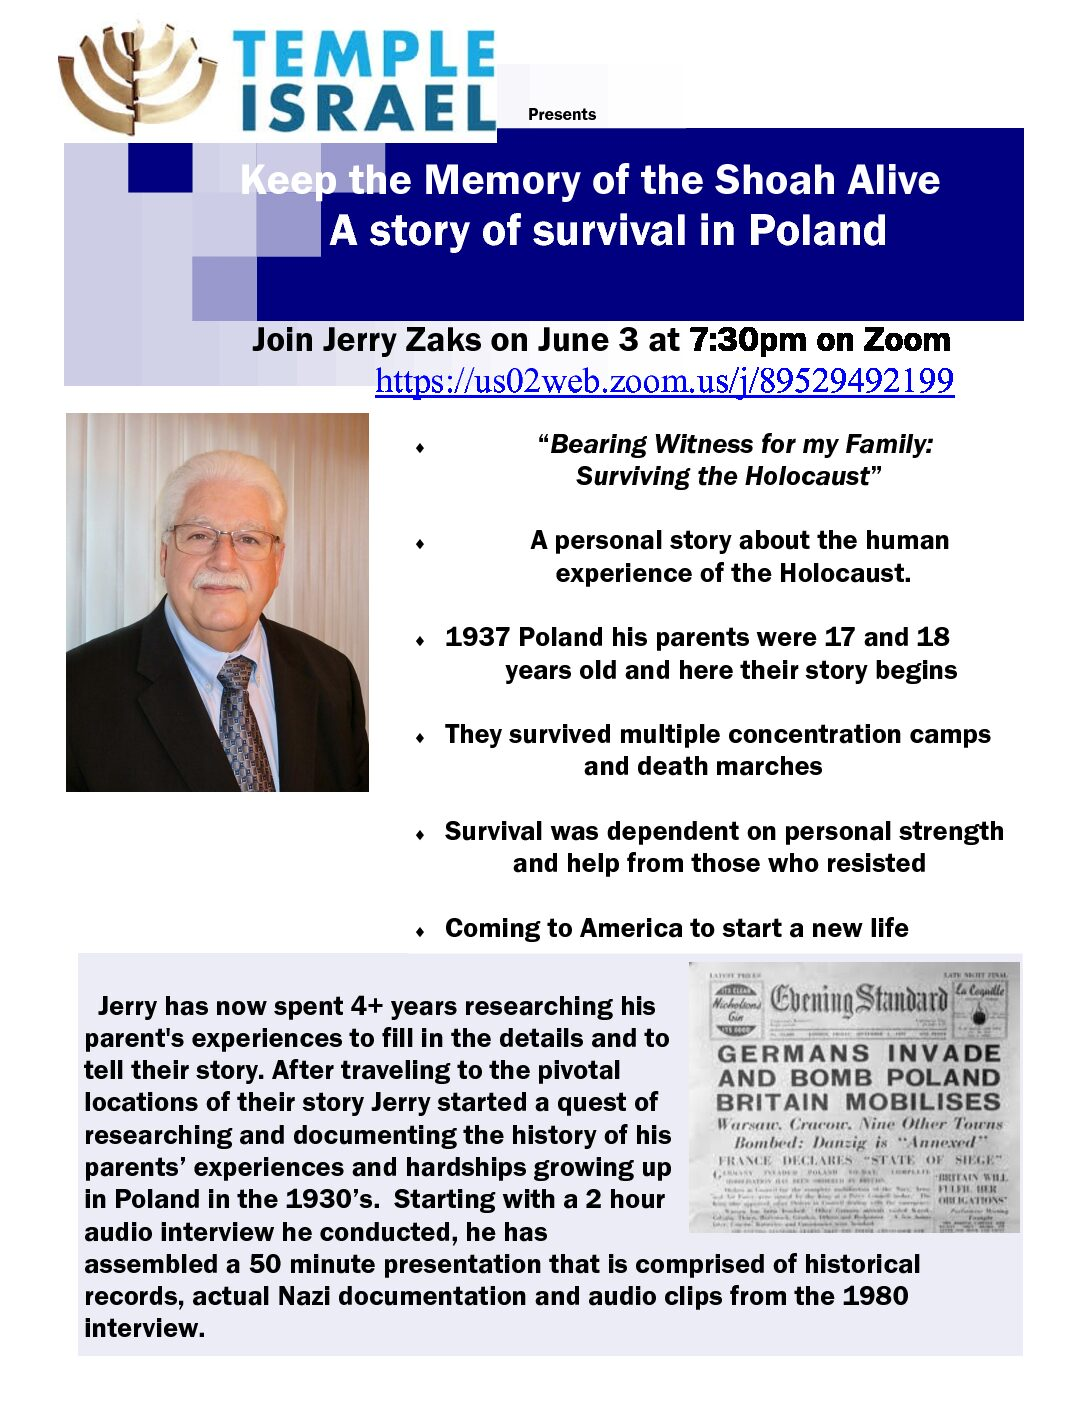 Lecture: Memory of the Shoah Alive, a story of survival in Poland